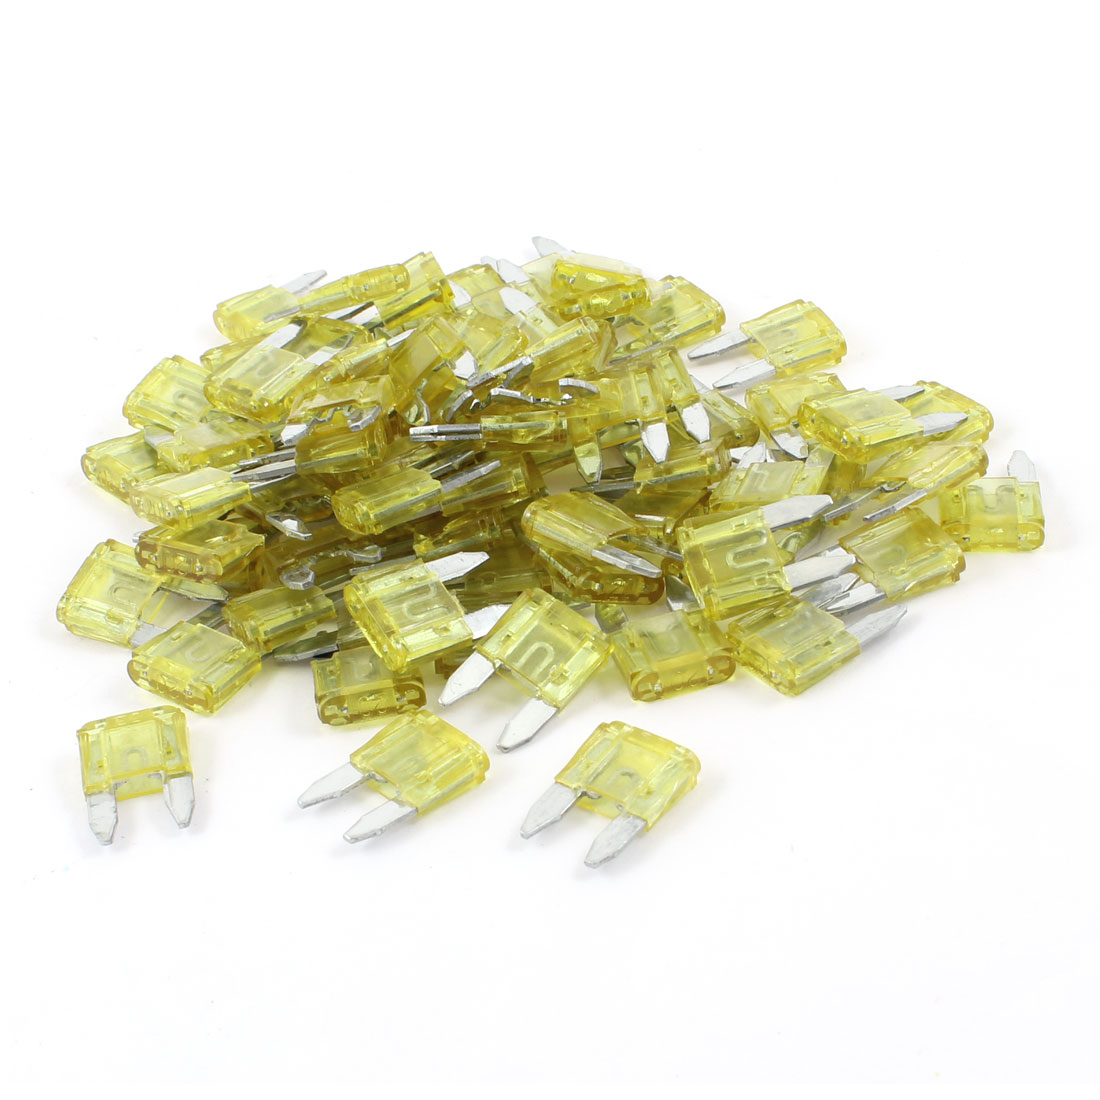 120 Pcs Automotive Car Boat Truck 20A Blade Fuse Yellow